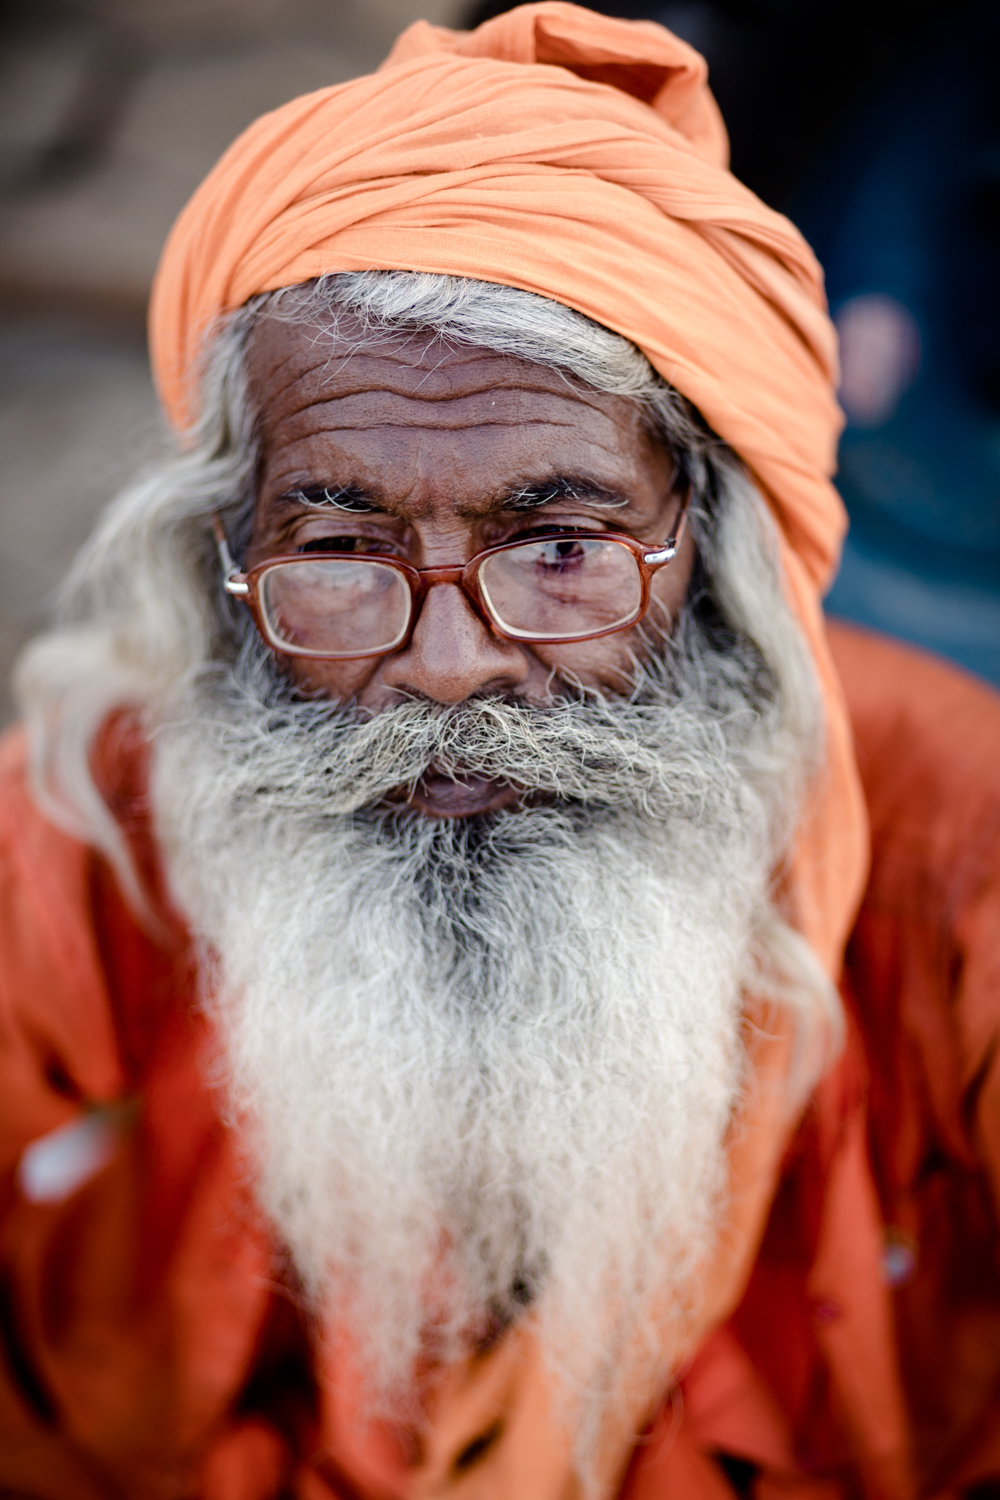 A baba in ocher robes.